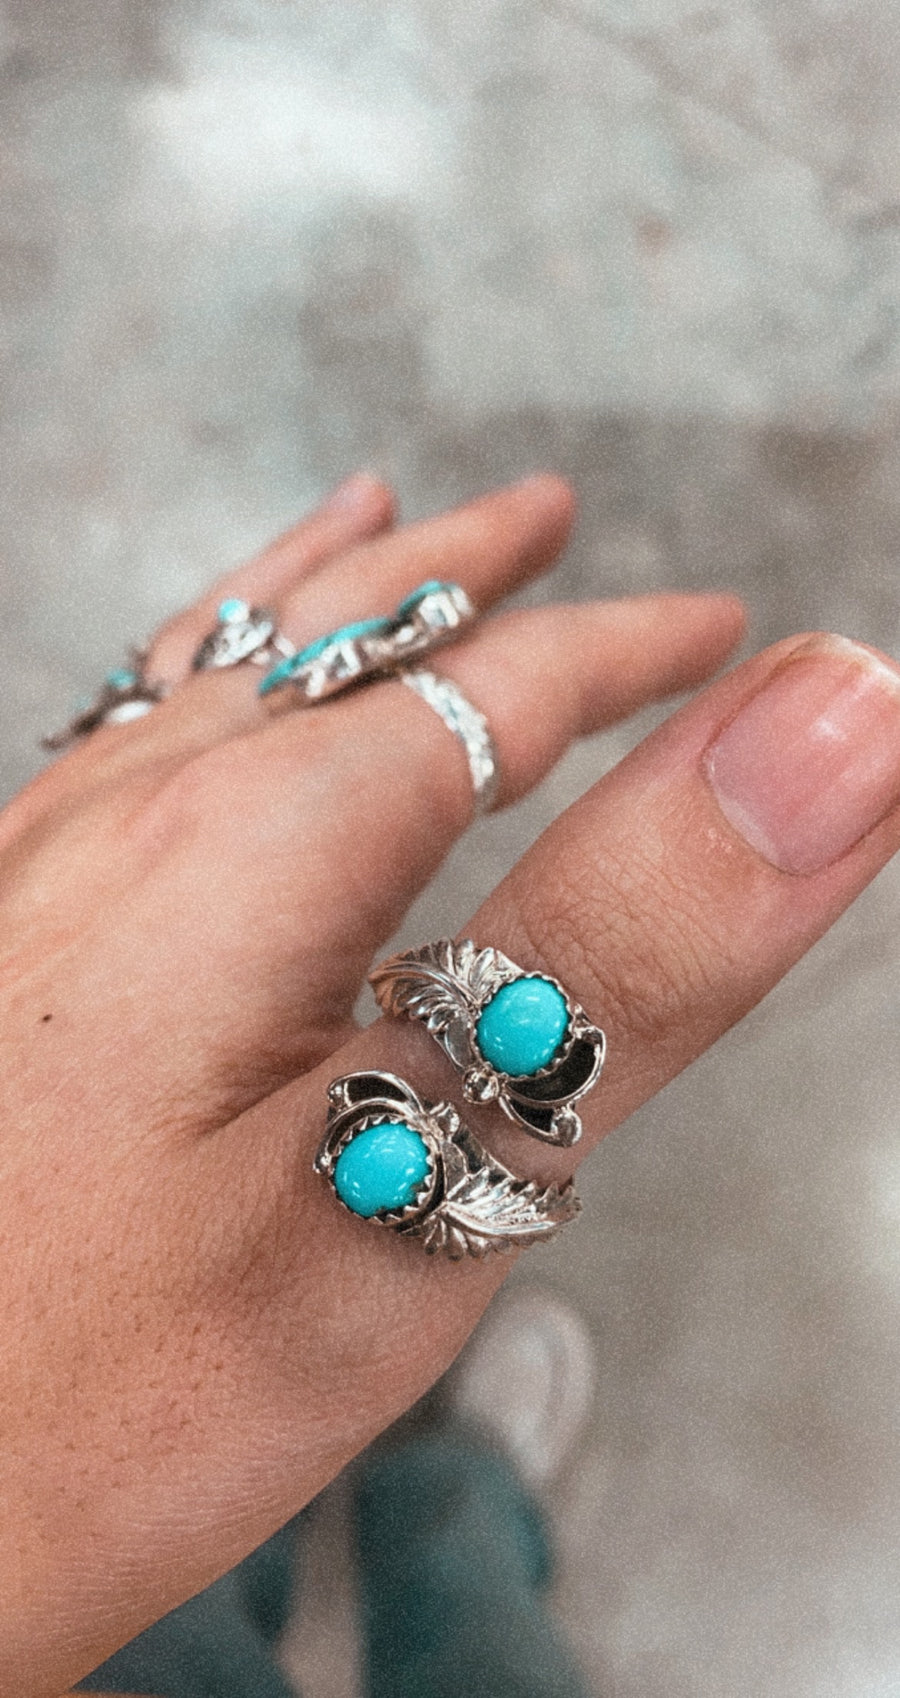 Genuine Turquoise Adjustable Sterling Silver Ring